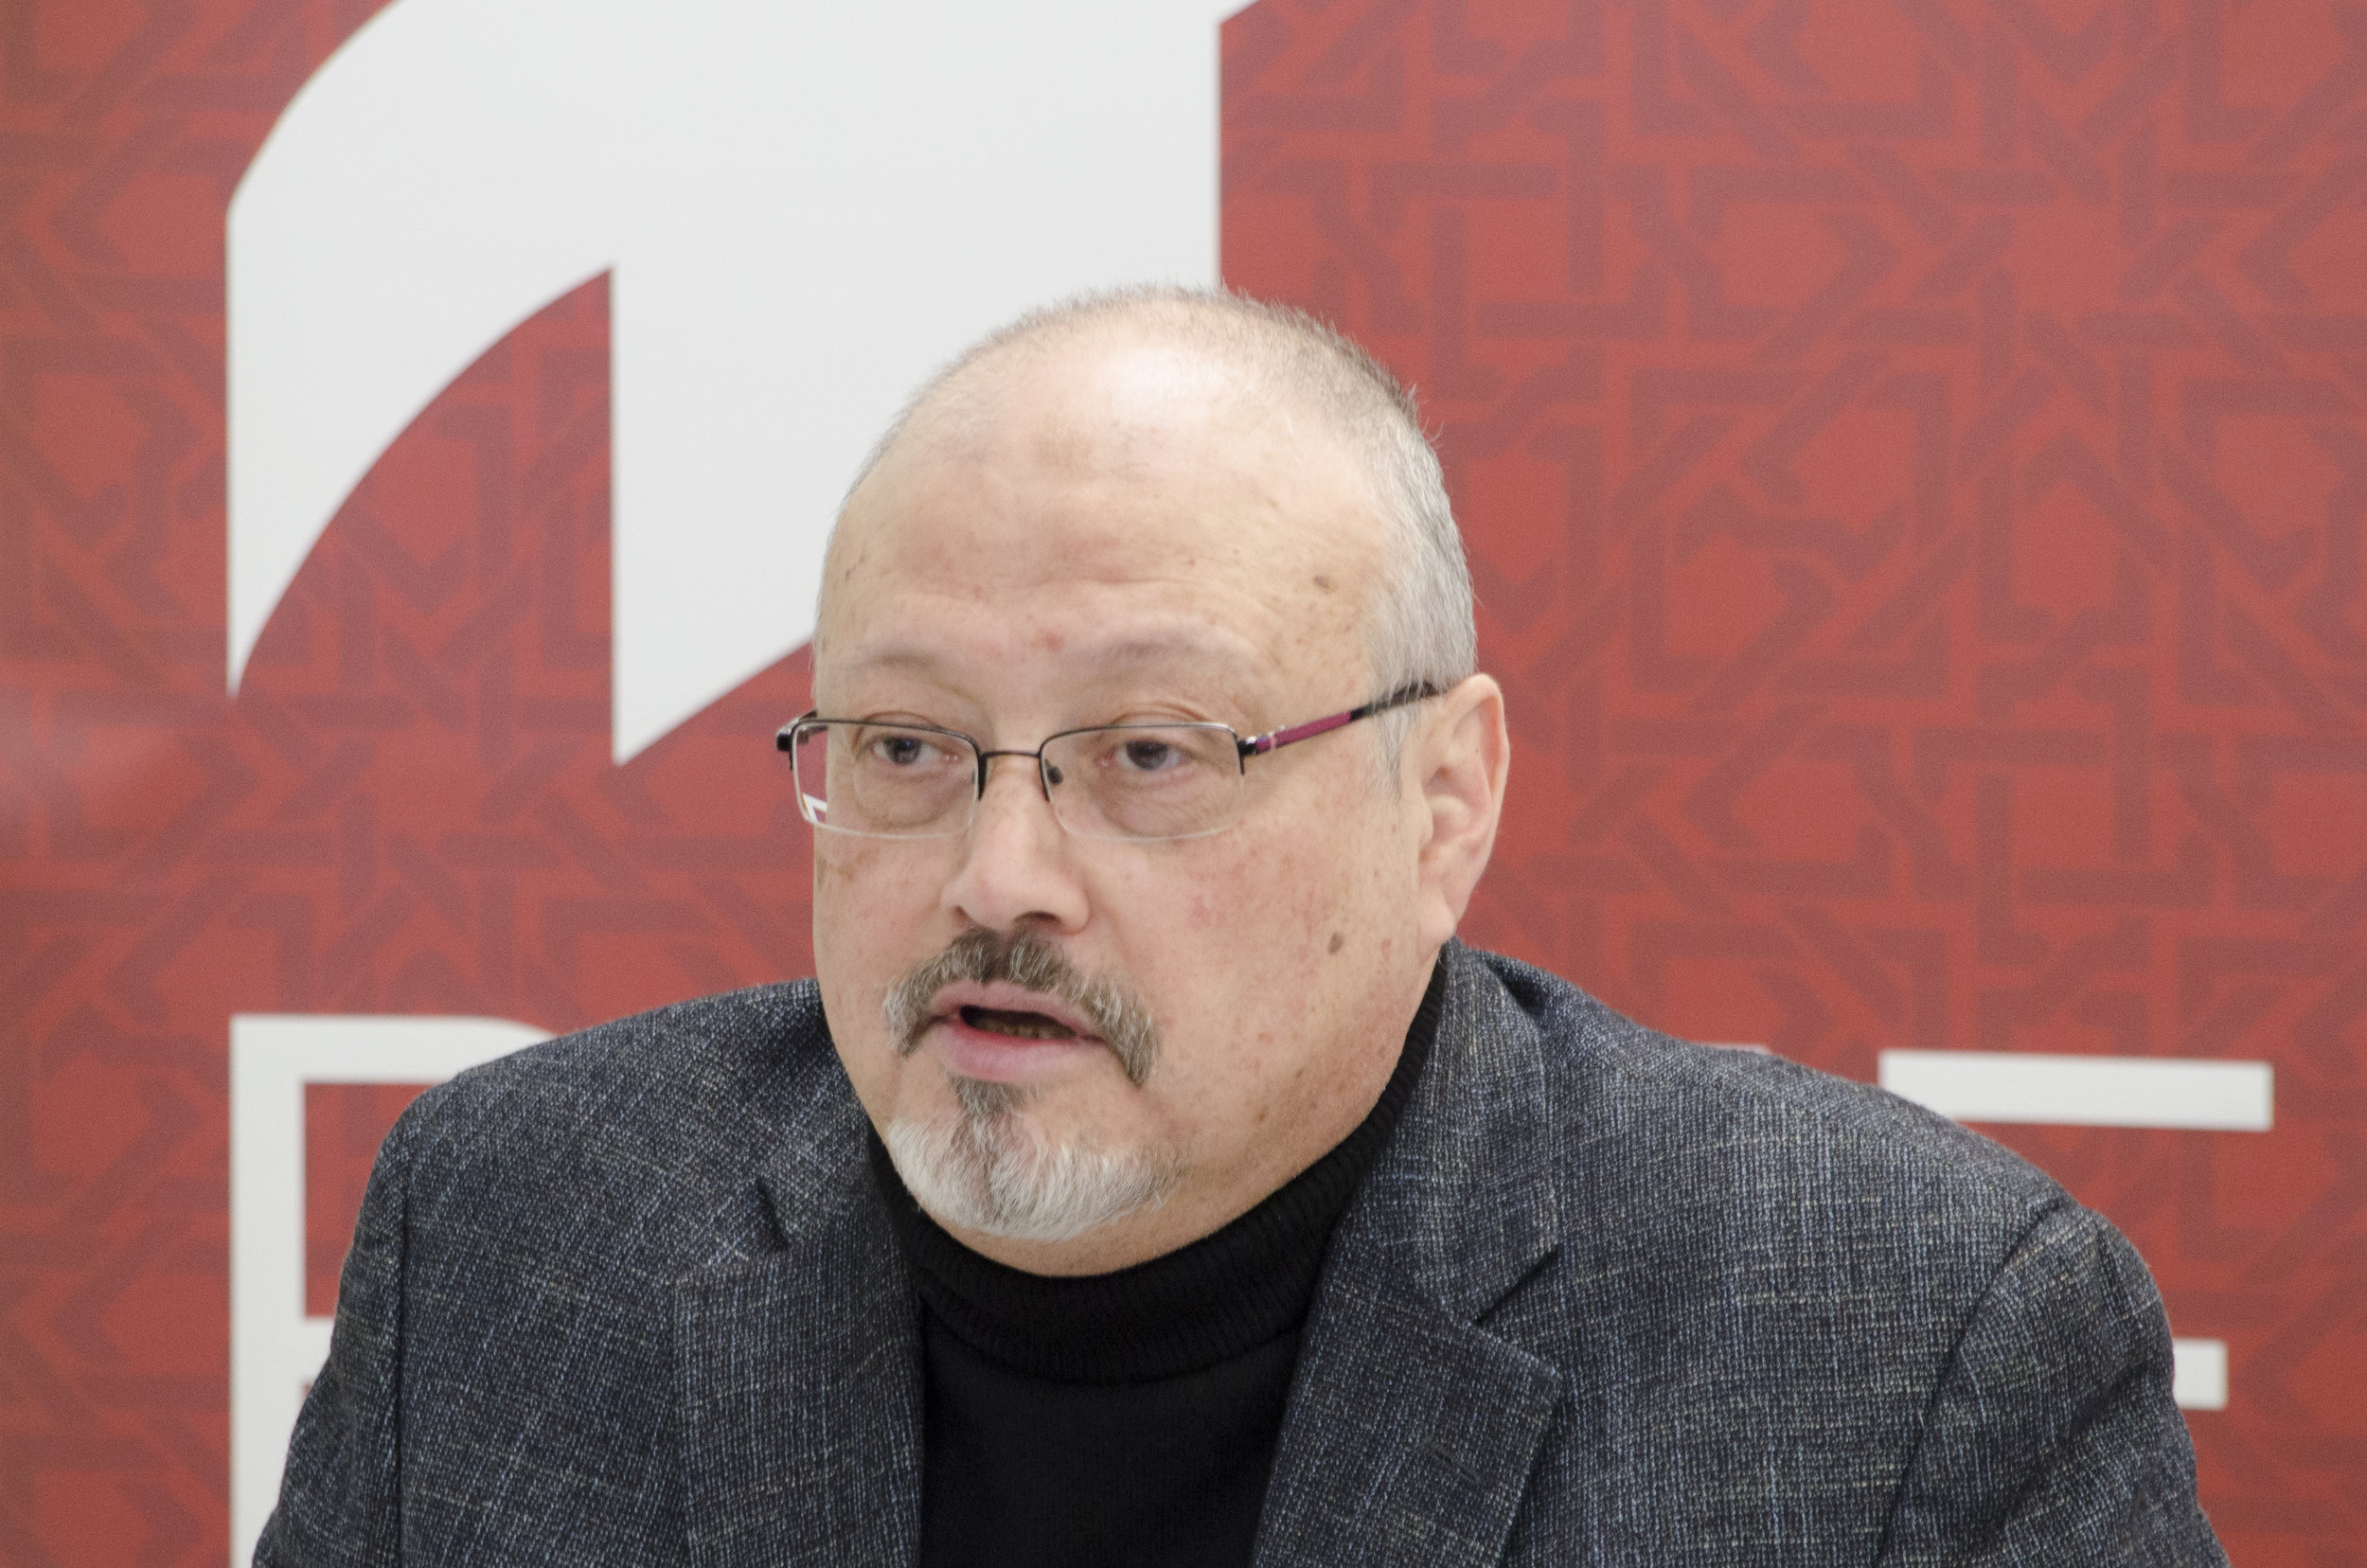 Jamal Khashoggi in March 2018